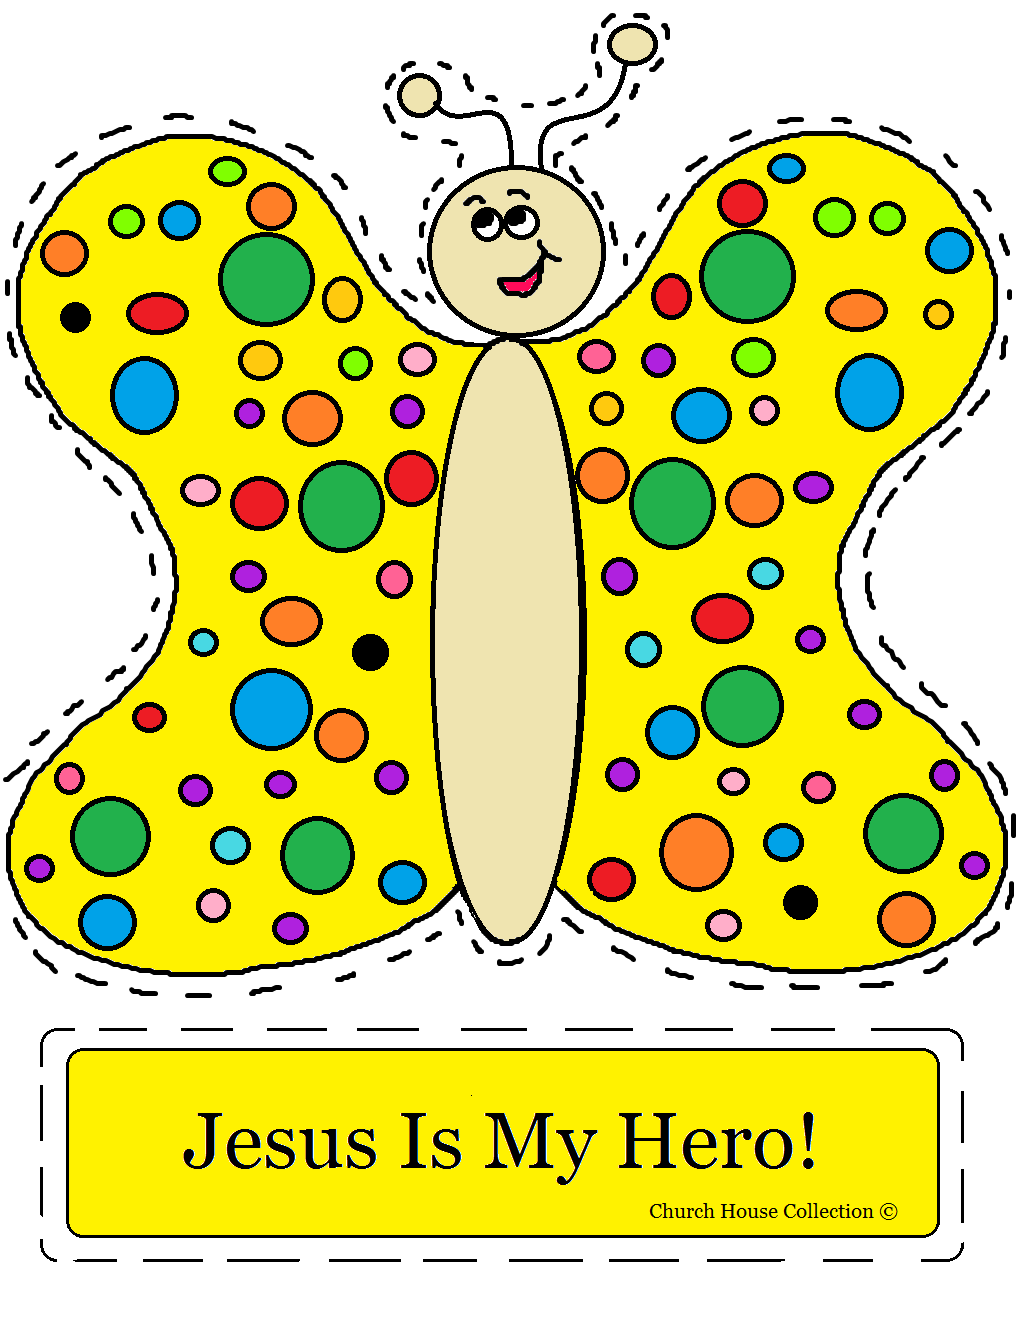 Church house collection blog jesus is my hero butterfly for Childrens sunday school crafts